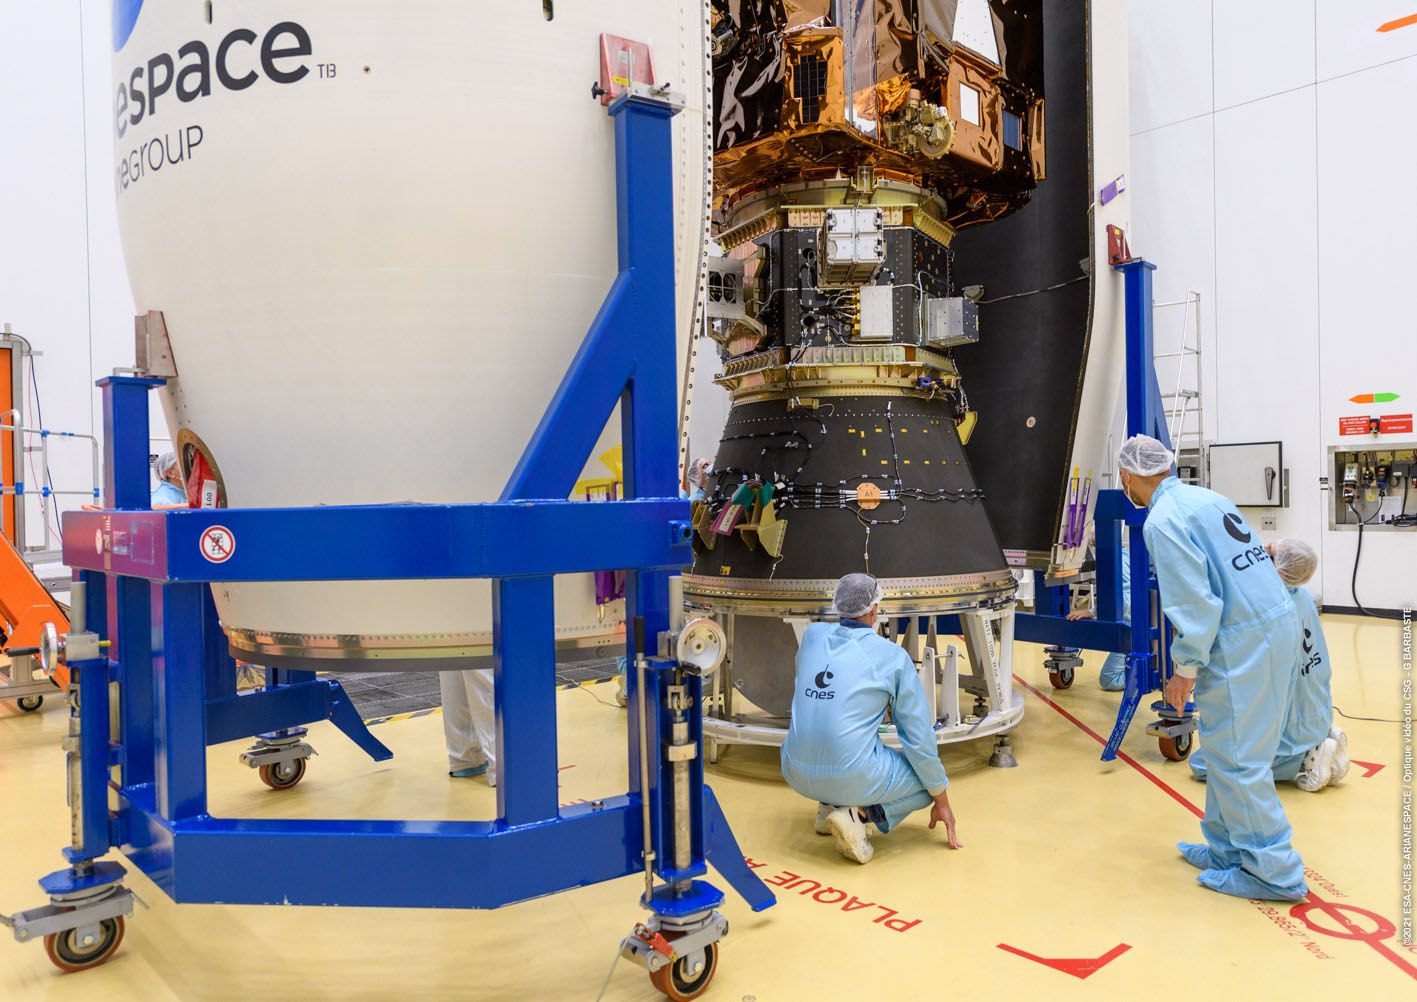 Vega - VV18 - Pleiades Neo 3 - Pléiades NEO - Airbus Defence and Space - Launch - Arianespace - Coiffe